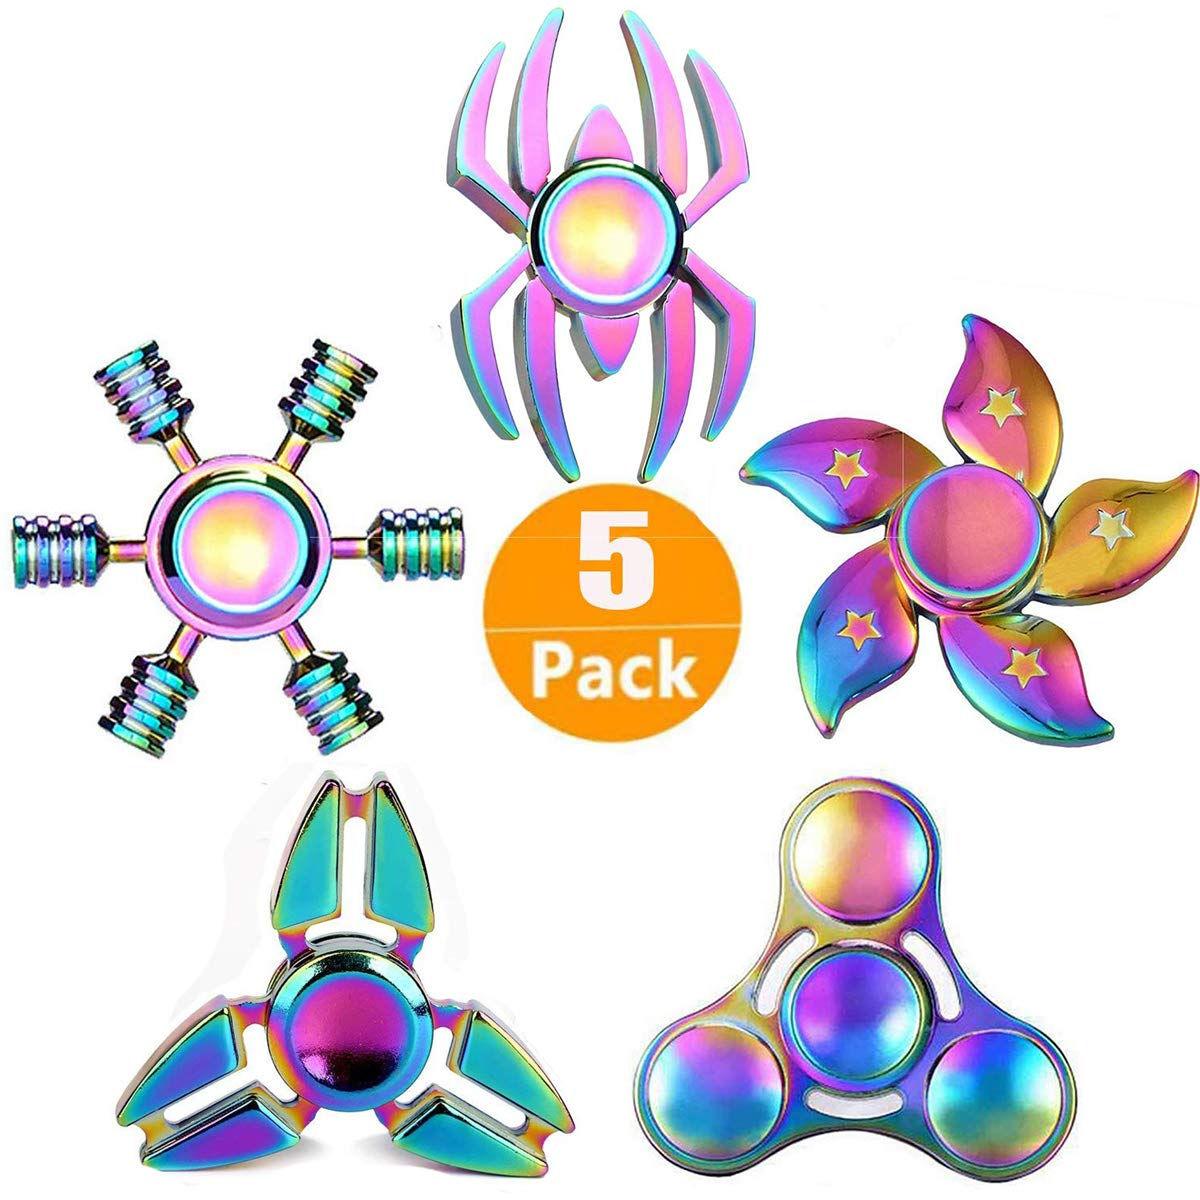 Xstar Rainwbow Snitch Fidget Spinner Metal Hand Spinner Focus Decompression Toy Stainless Steel Metal Fidget Toys Fingertip Gyro Stress Relief Cube Fun Toy Gifts for Kids and Adults (5PCS)